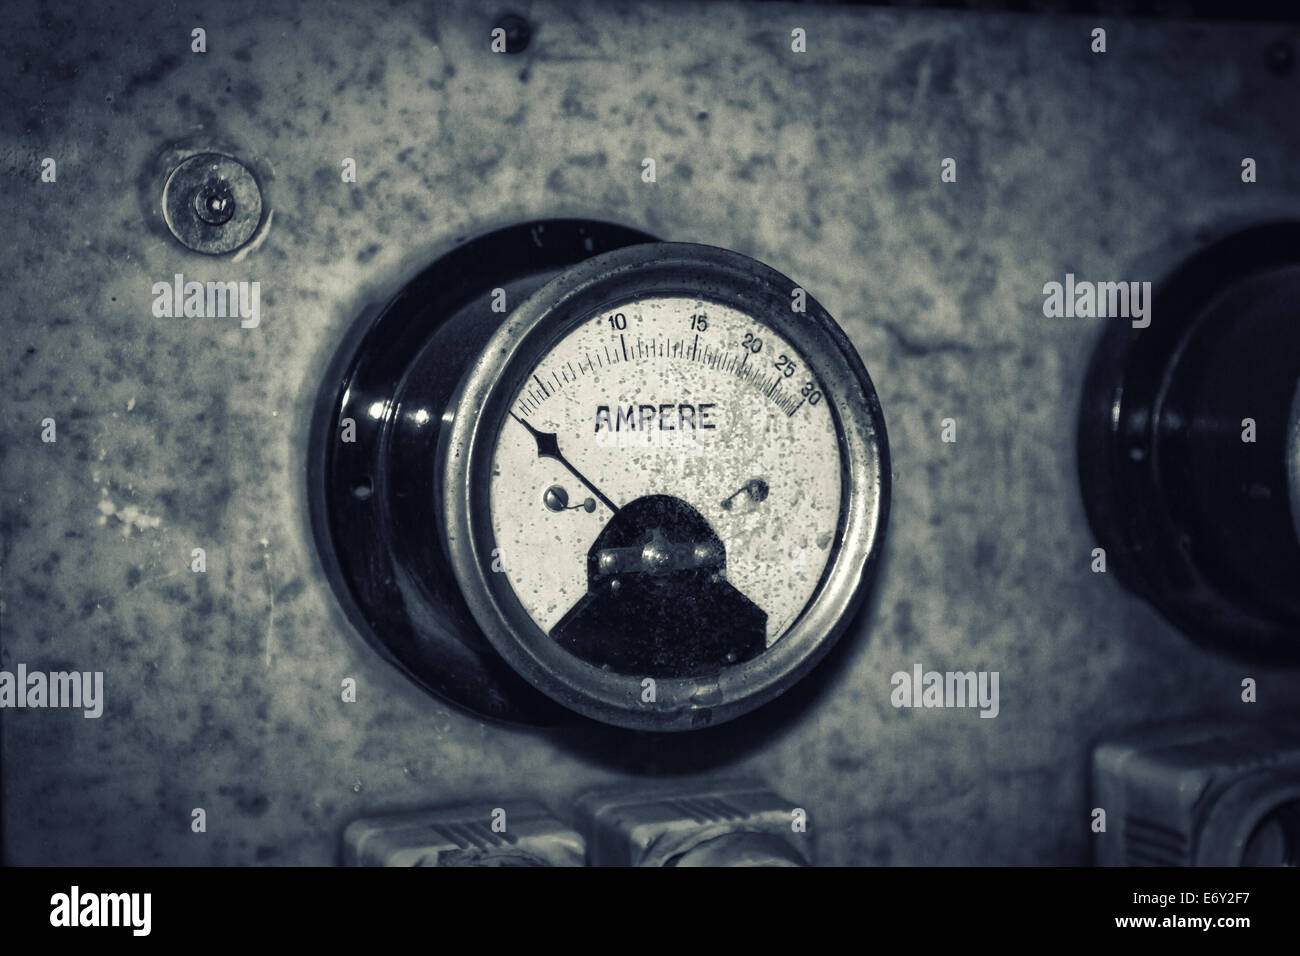 Ampere - Stock Image